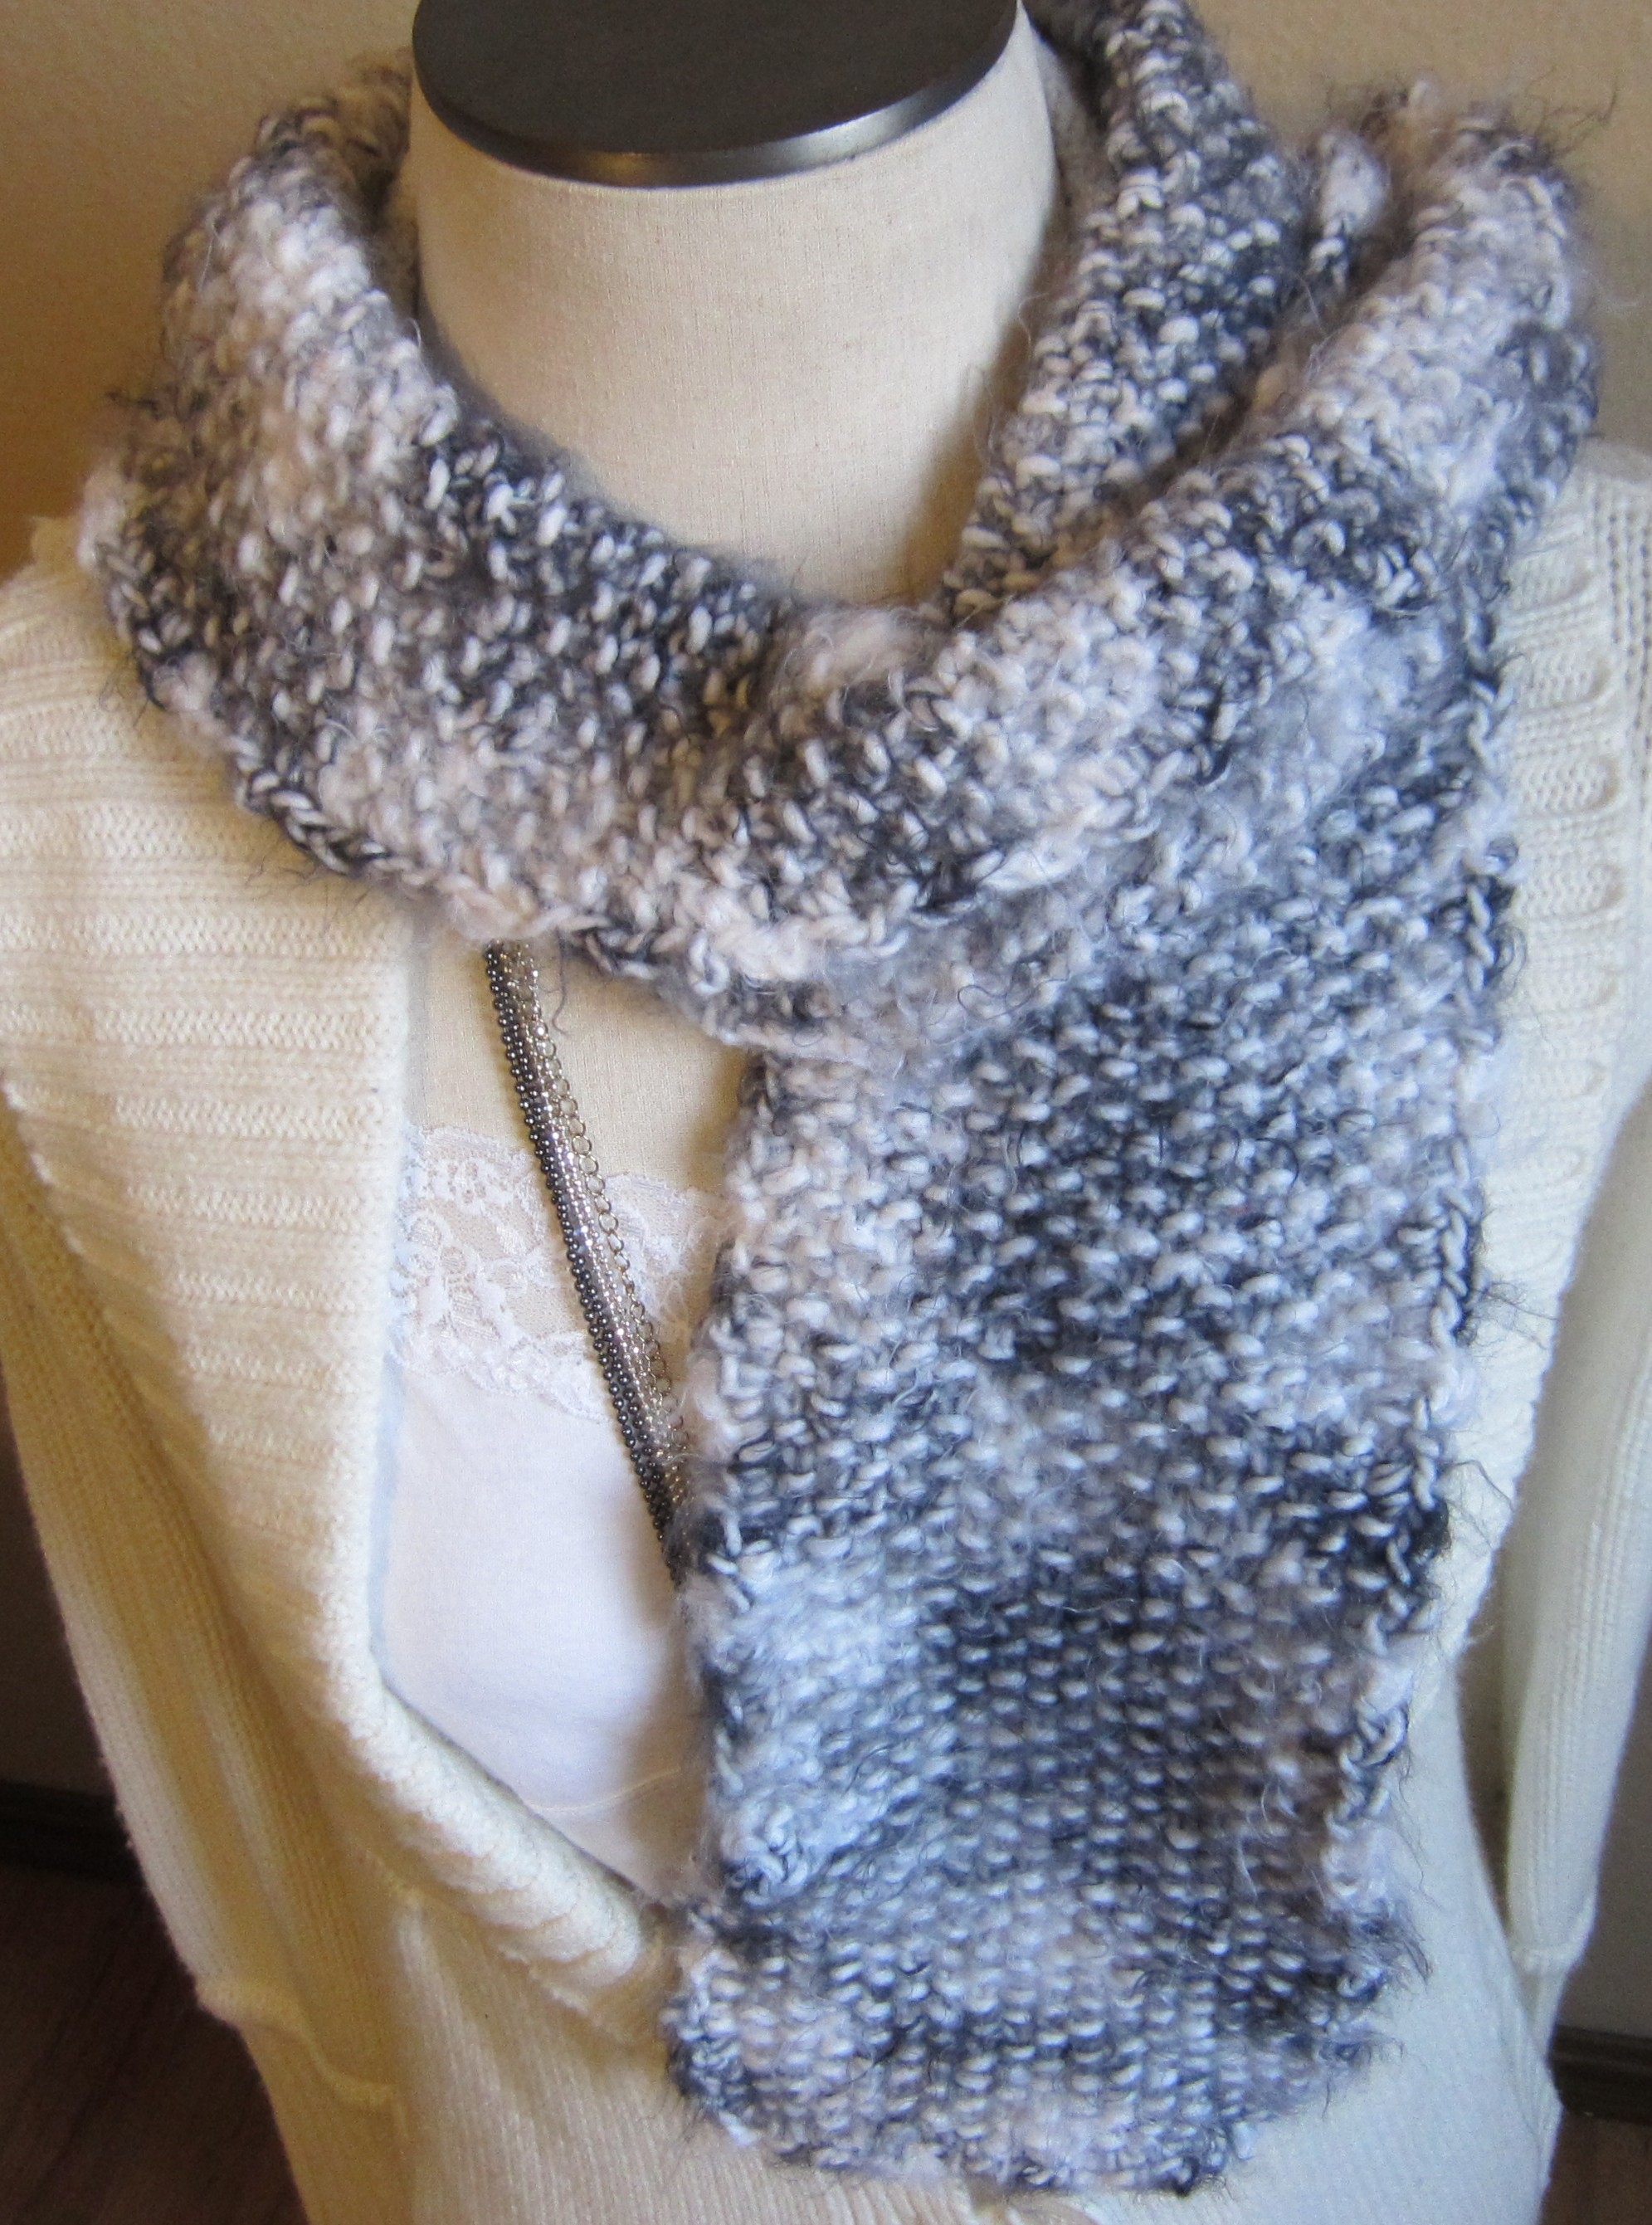 Knitted Scarf made with Soft Angel Hair Yarn in Black and ...